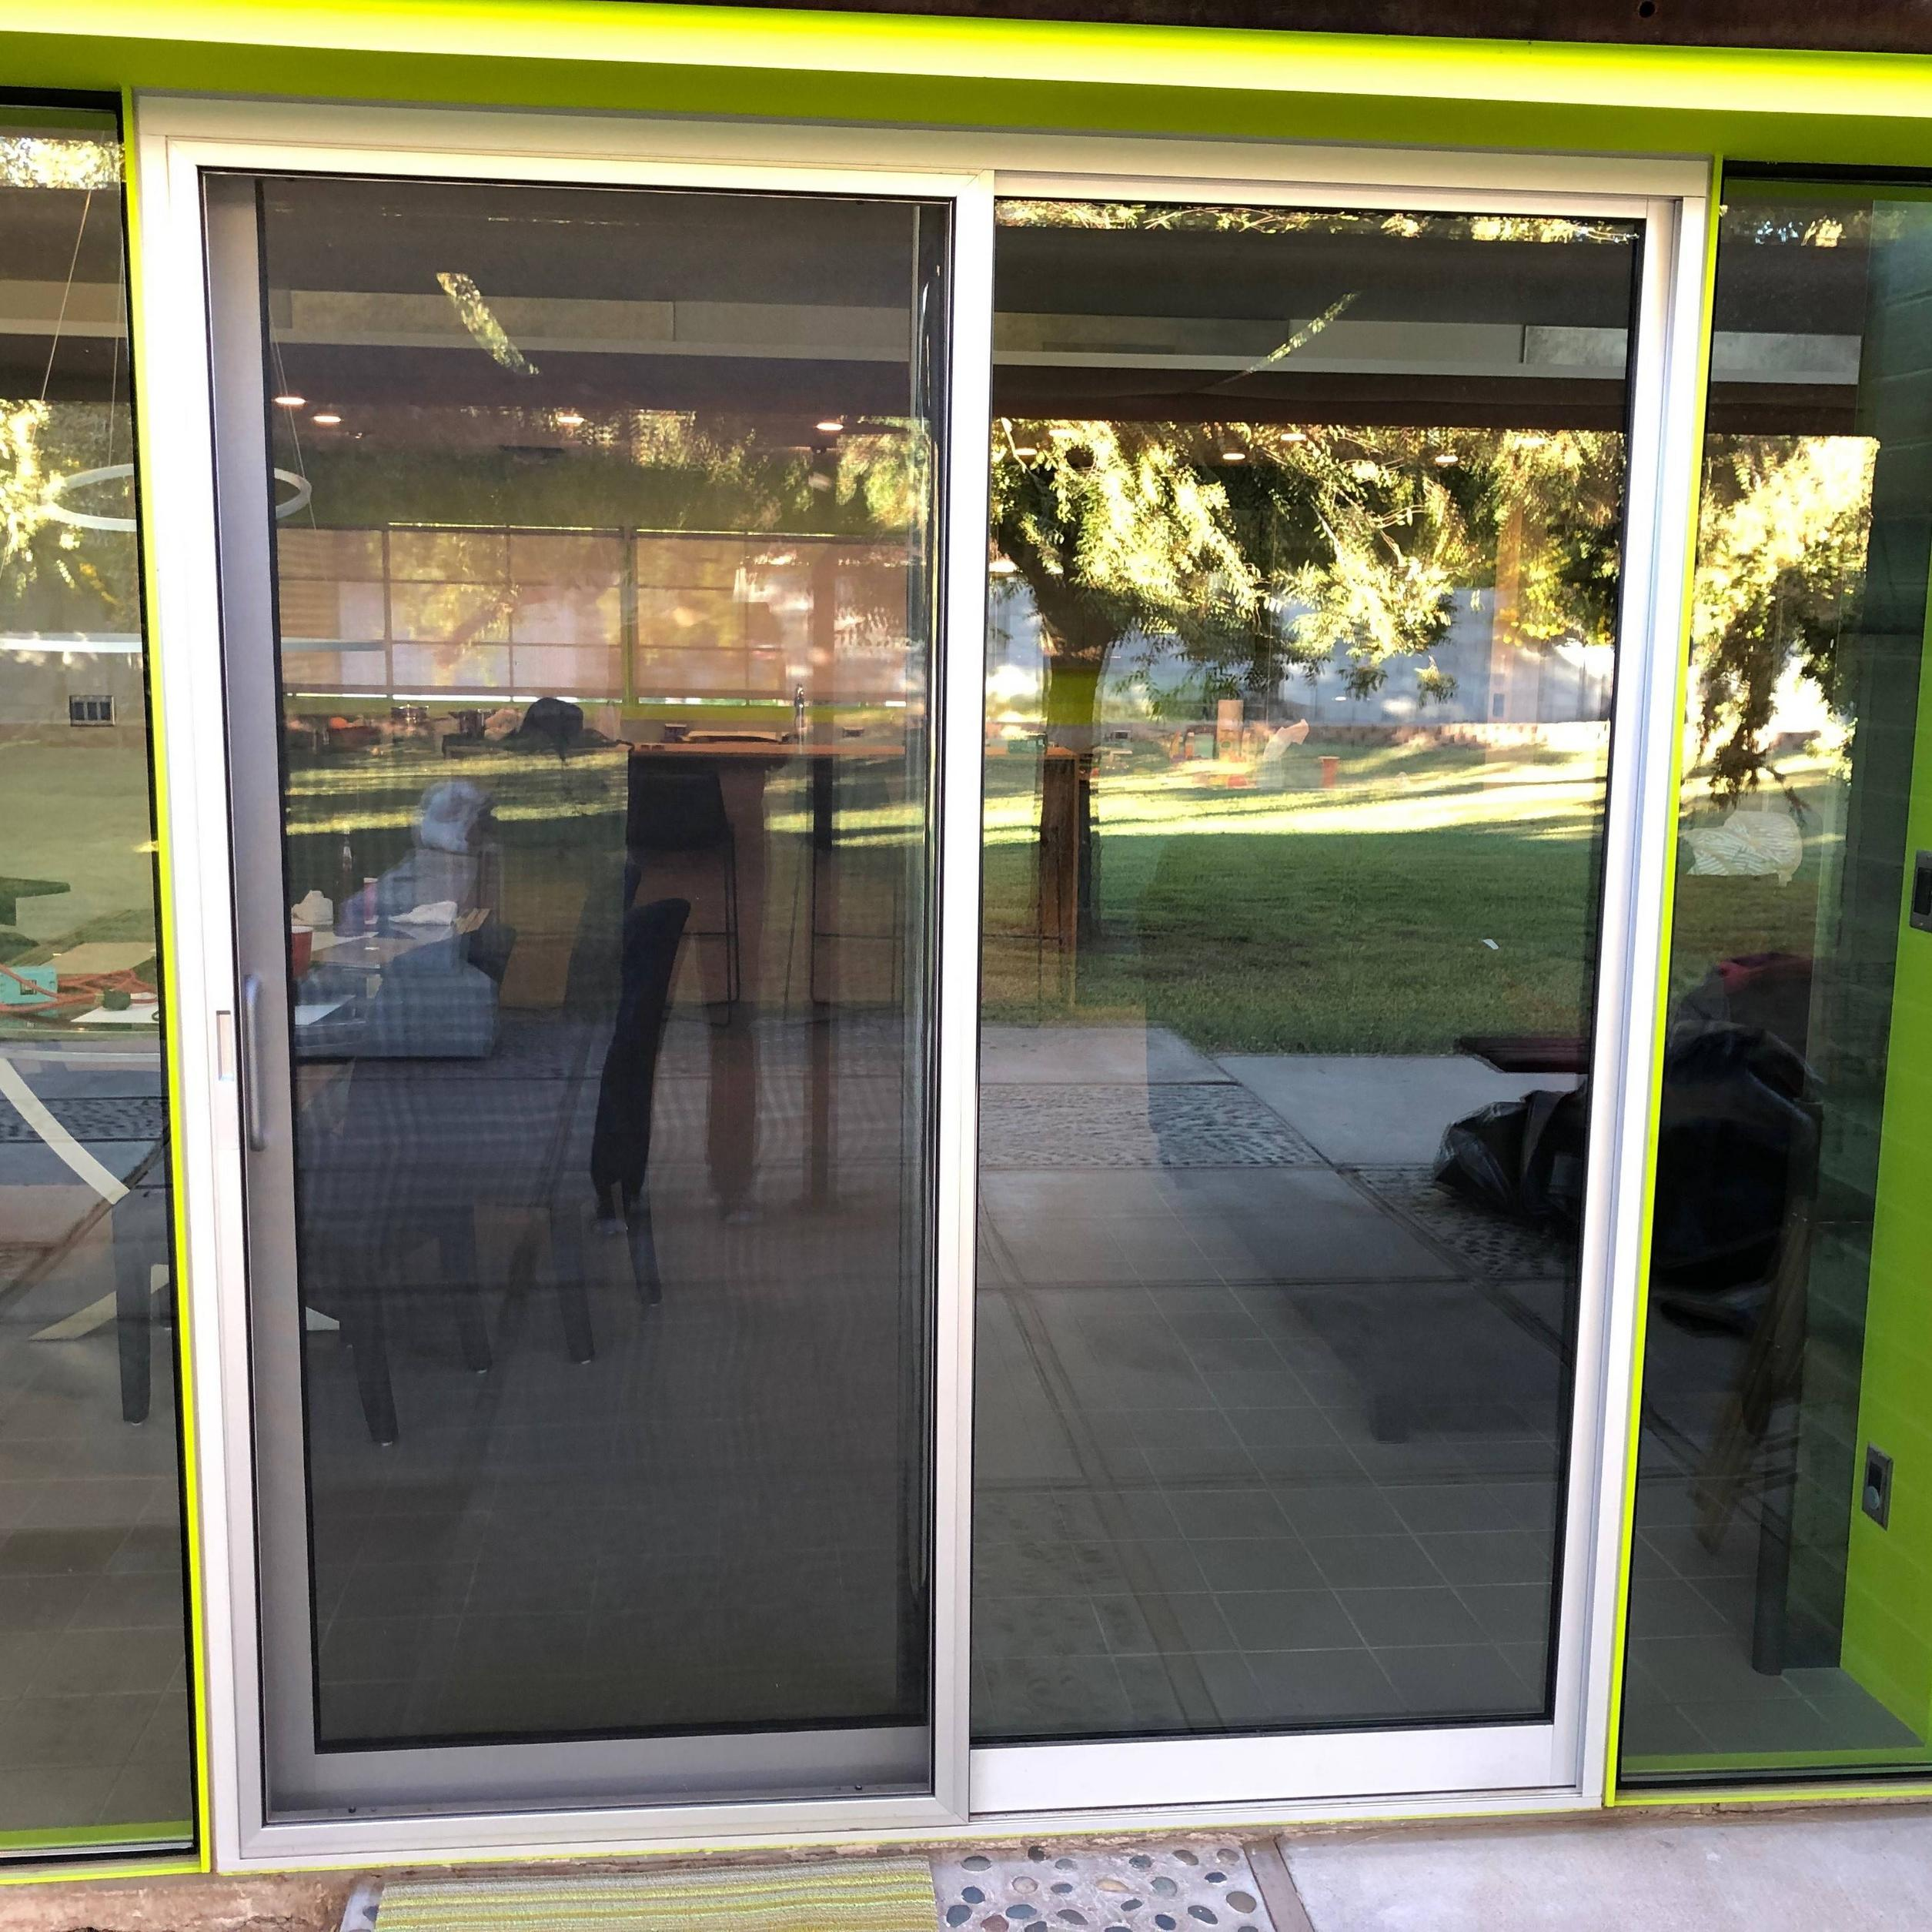 https diy stackexchange com questions 156319 water leaking into house through sliding glass door could missing flashing be t